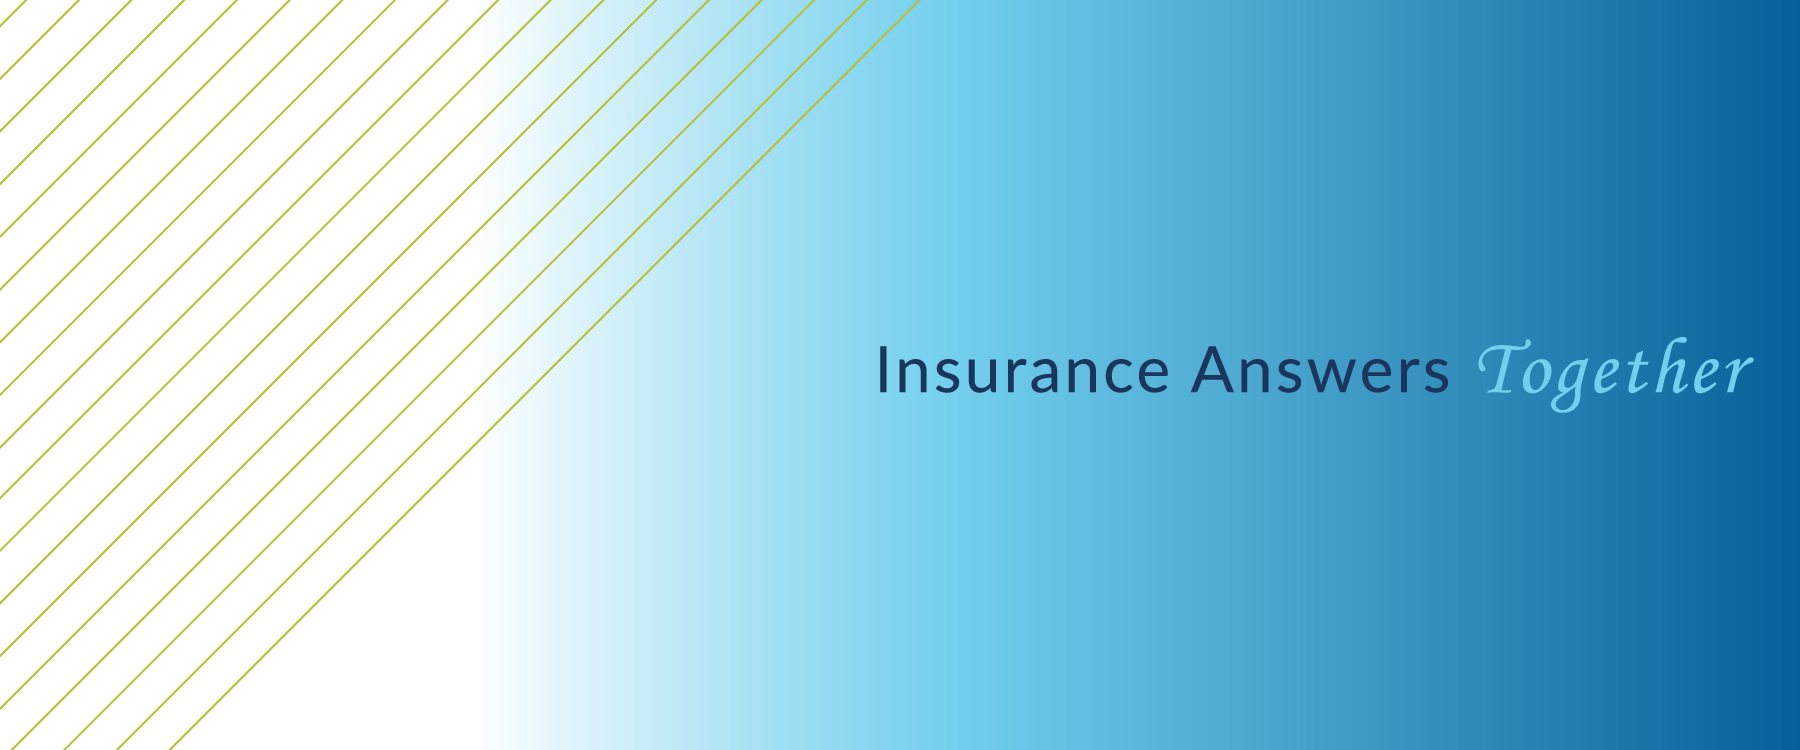 Website - Insurance Answers Together Banner-01